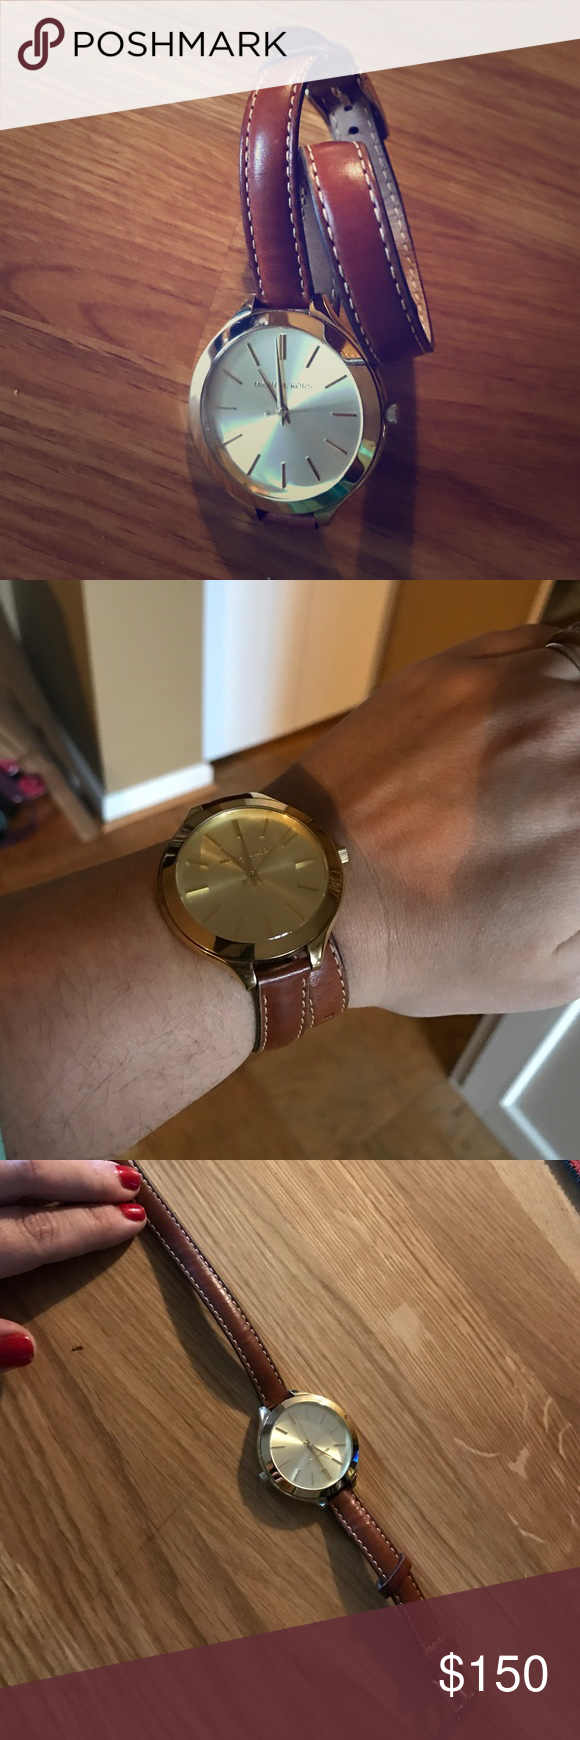 Michael Kors Women's MK2256 Brown Wrap Watch Michael Kors MK2256 Slim 42mm wide and 9mm thick gold plated solid stainless steel case with a fixed bezel and textured push-pull crown. Powered by an accurate quartz movement. Also features a shiny gold tone dial with gold tone luminous hands and index hour markers, scratch resistant mineral crystal and water resistant to 50 meters and is equipped with a 12mm wide brown double wrap leather strap with a buckle clasp. Used but in excellent…